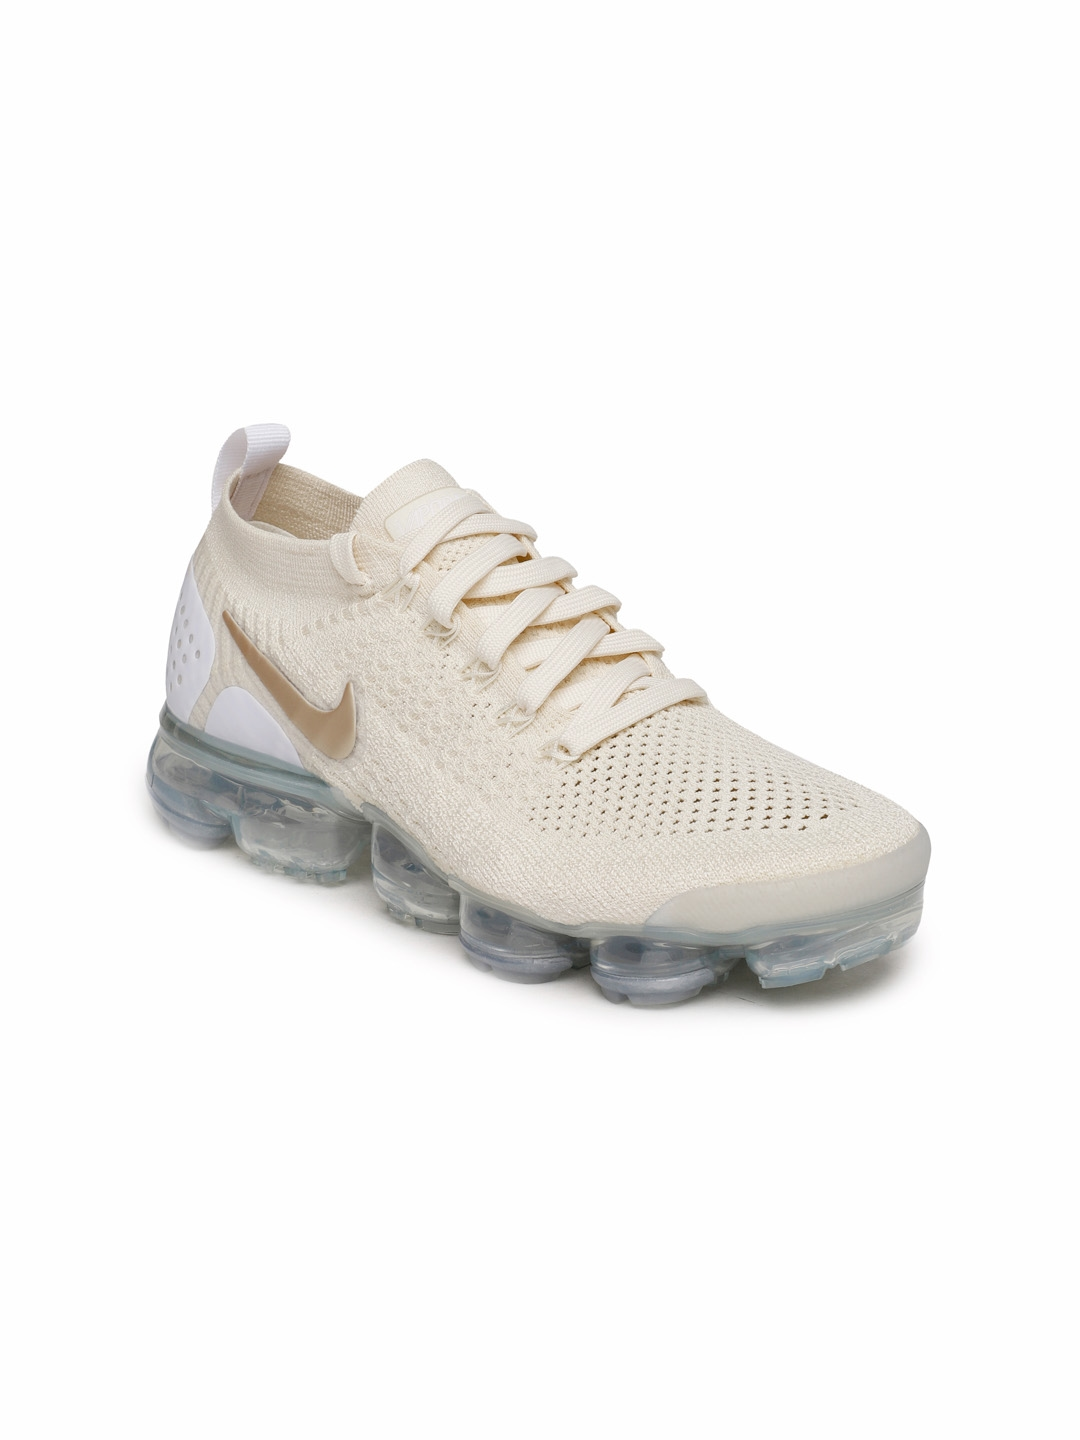 3413eaed9ea02 Buy Nike Women Cream Coloured AIR VAPORMAX FLYKNIT 2 Running Shoes ...